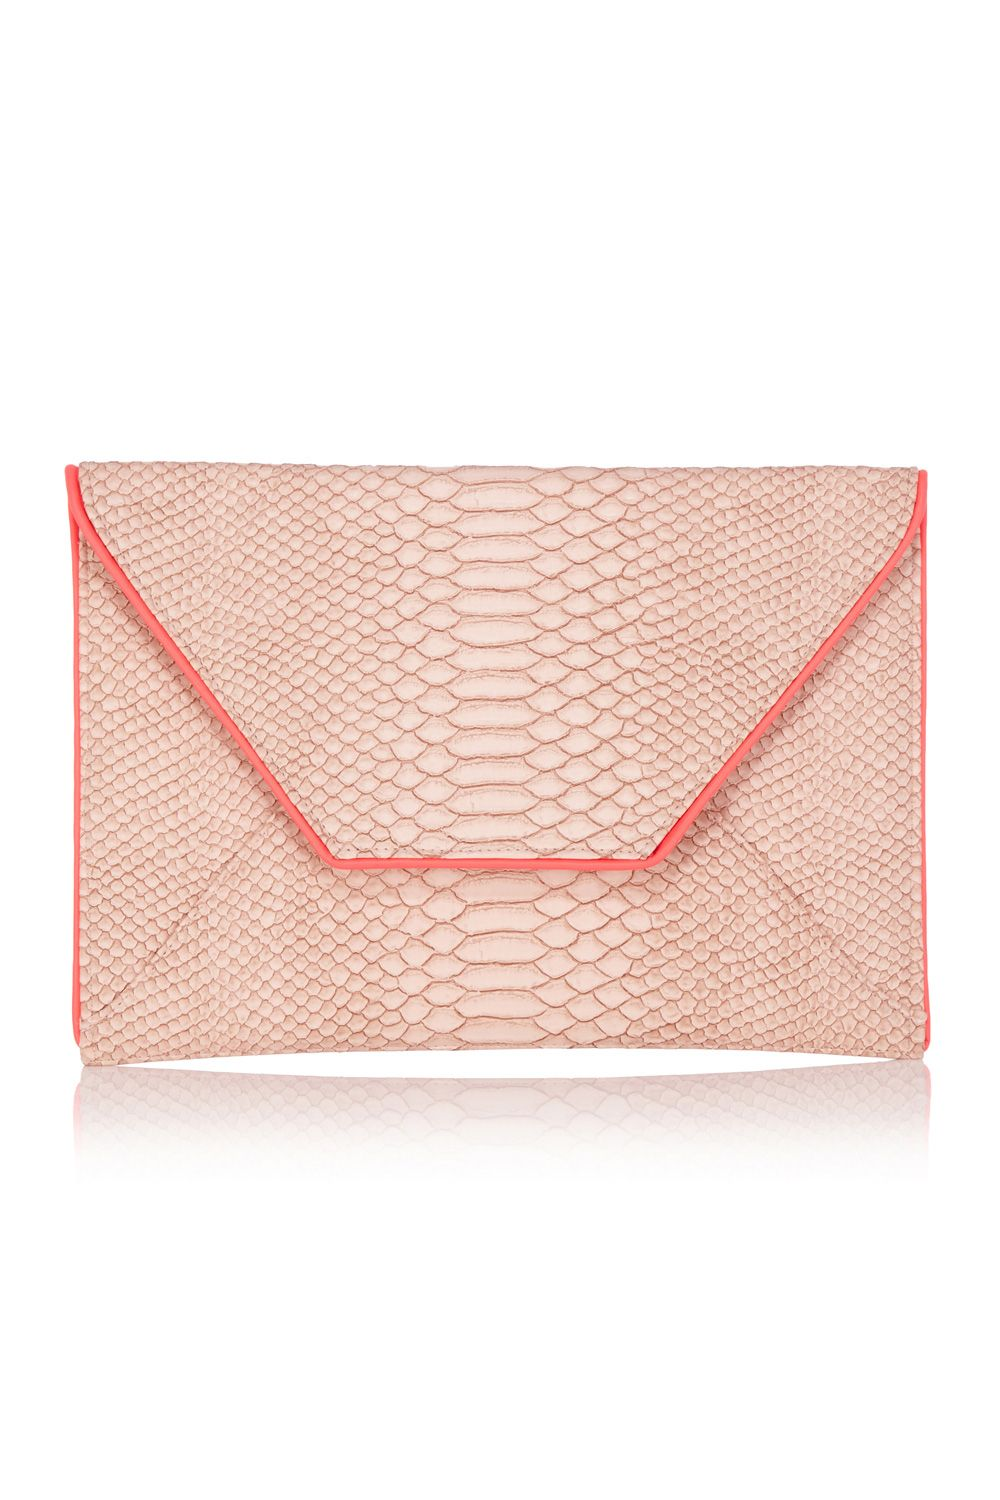 Snake envelope clutch